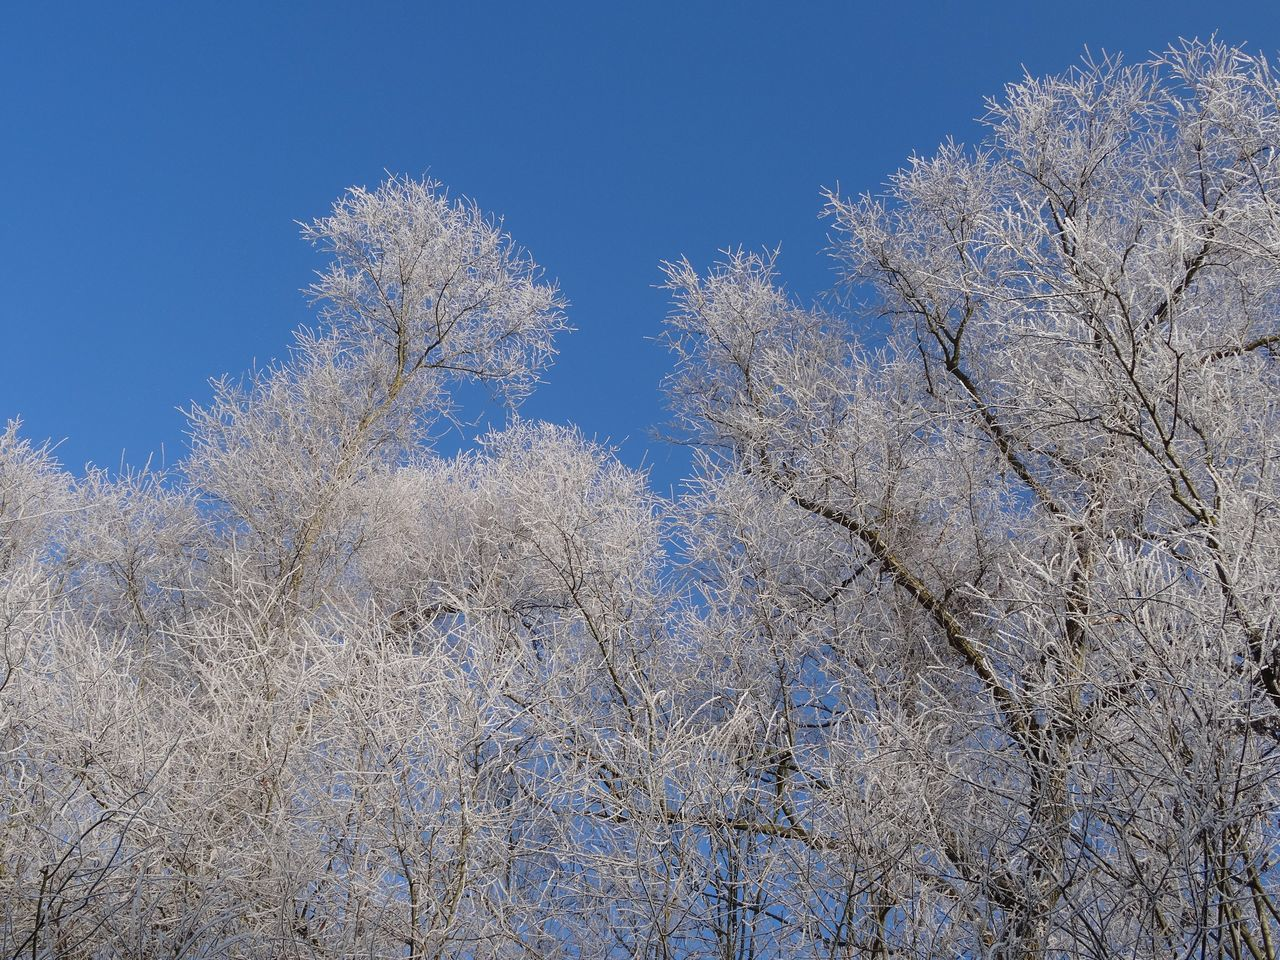 Low Angle View Tree Nature Blue Clear Sky Growth Day Outdoors No People Bare Tree Tranquility Branch Beauty In Nature Sky Snow Cold Temperature White Frost Winter Wonderland